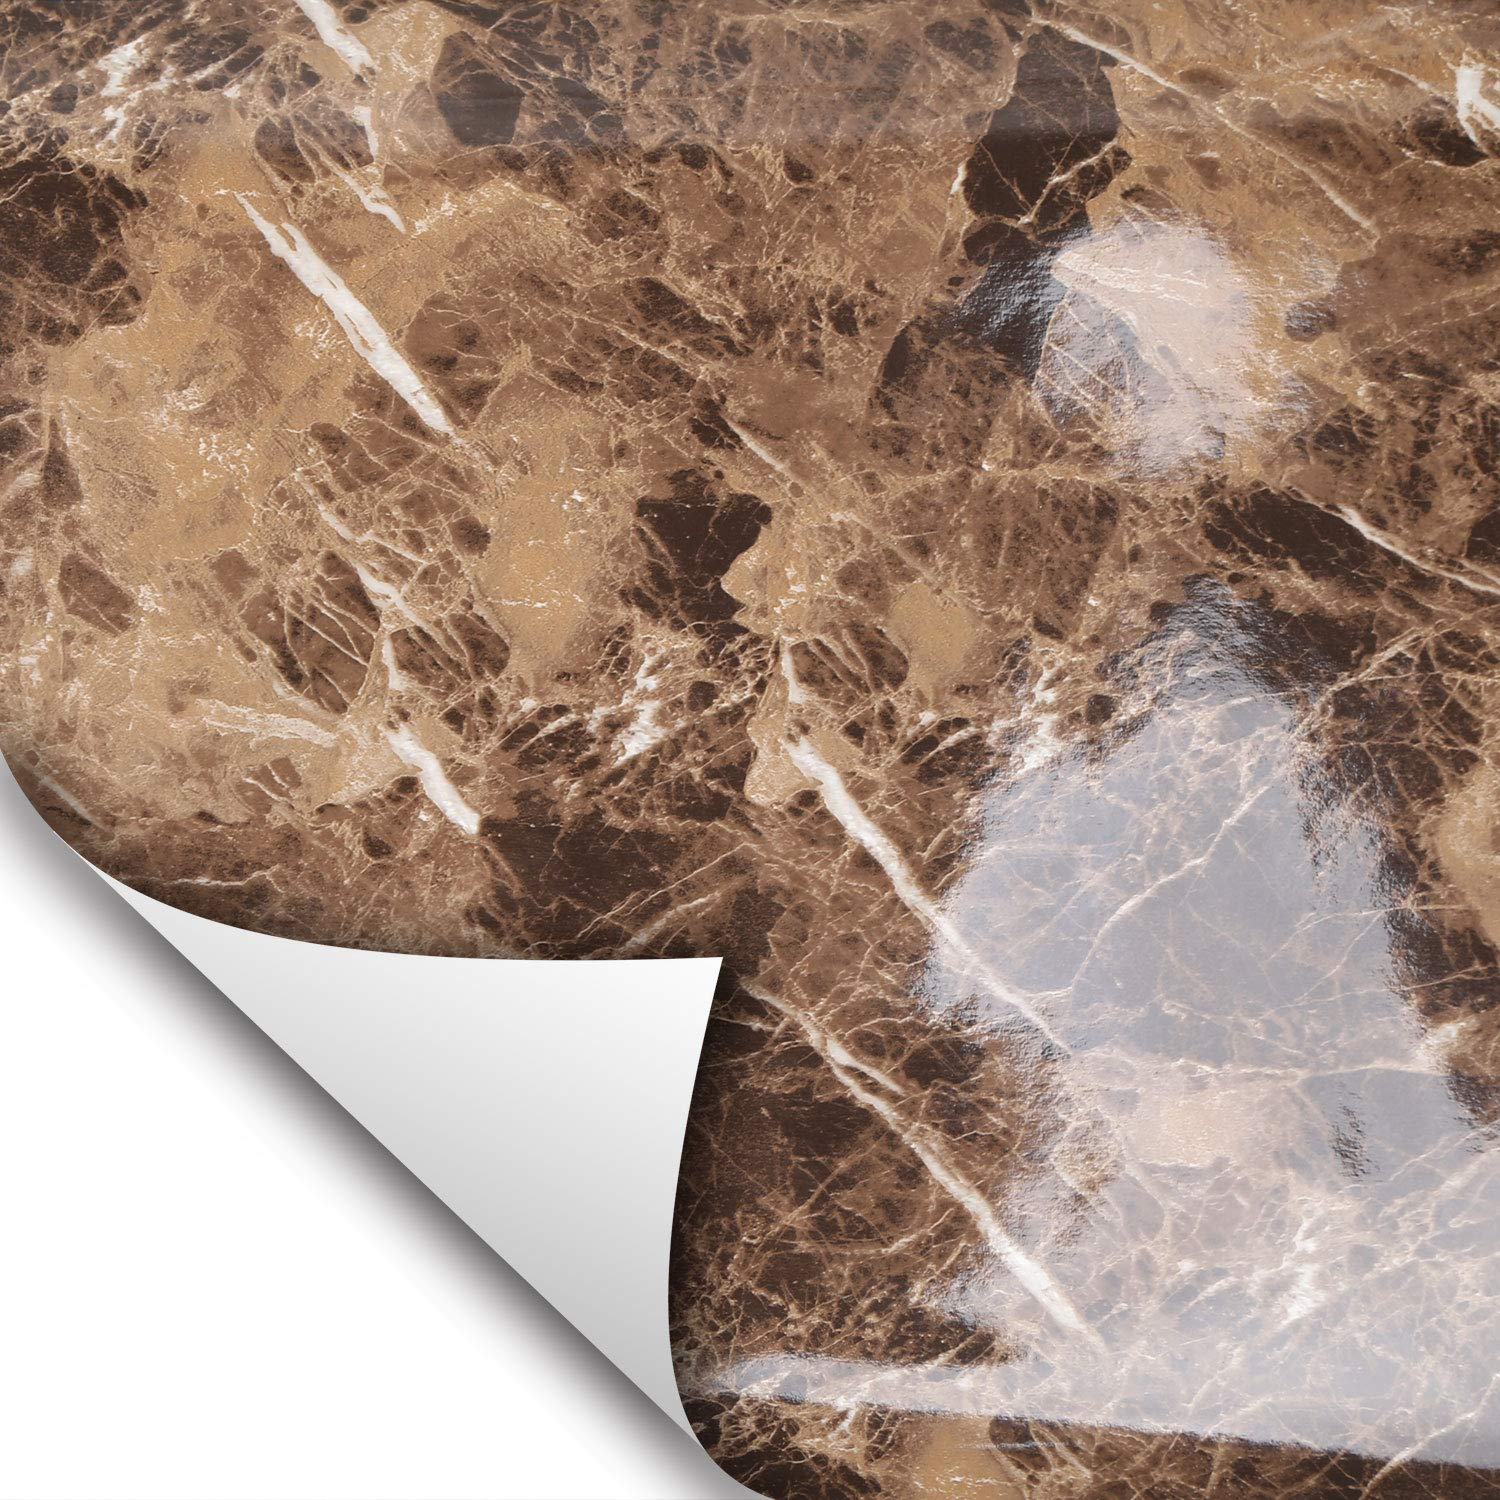 Wallstickery Marble Paper for Counter Top Brown Yellow Gray Granite Stone Look Gloss Self Adhesive Peel Stick Sticky Wall Stickers Removable Contact on Furniture Kitchen Cabinets (Brown + Gray)